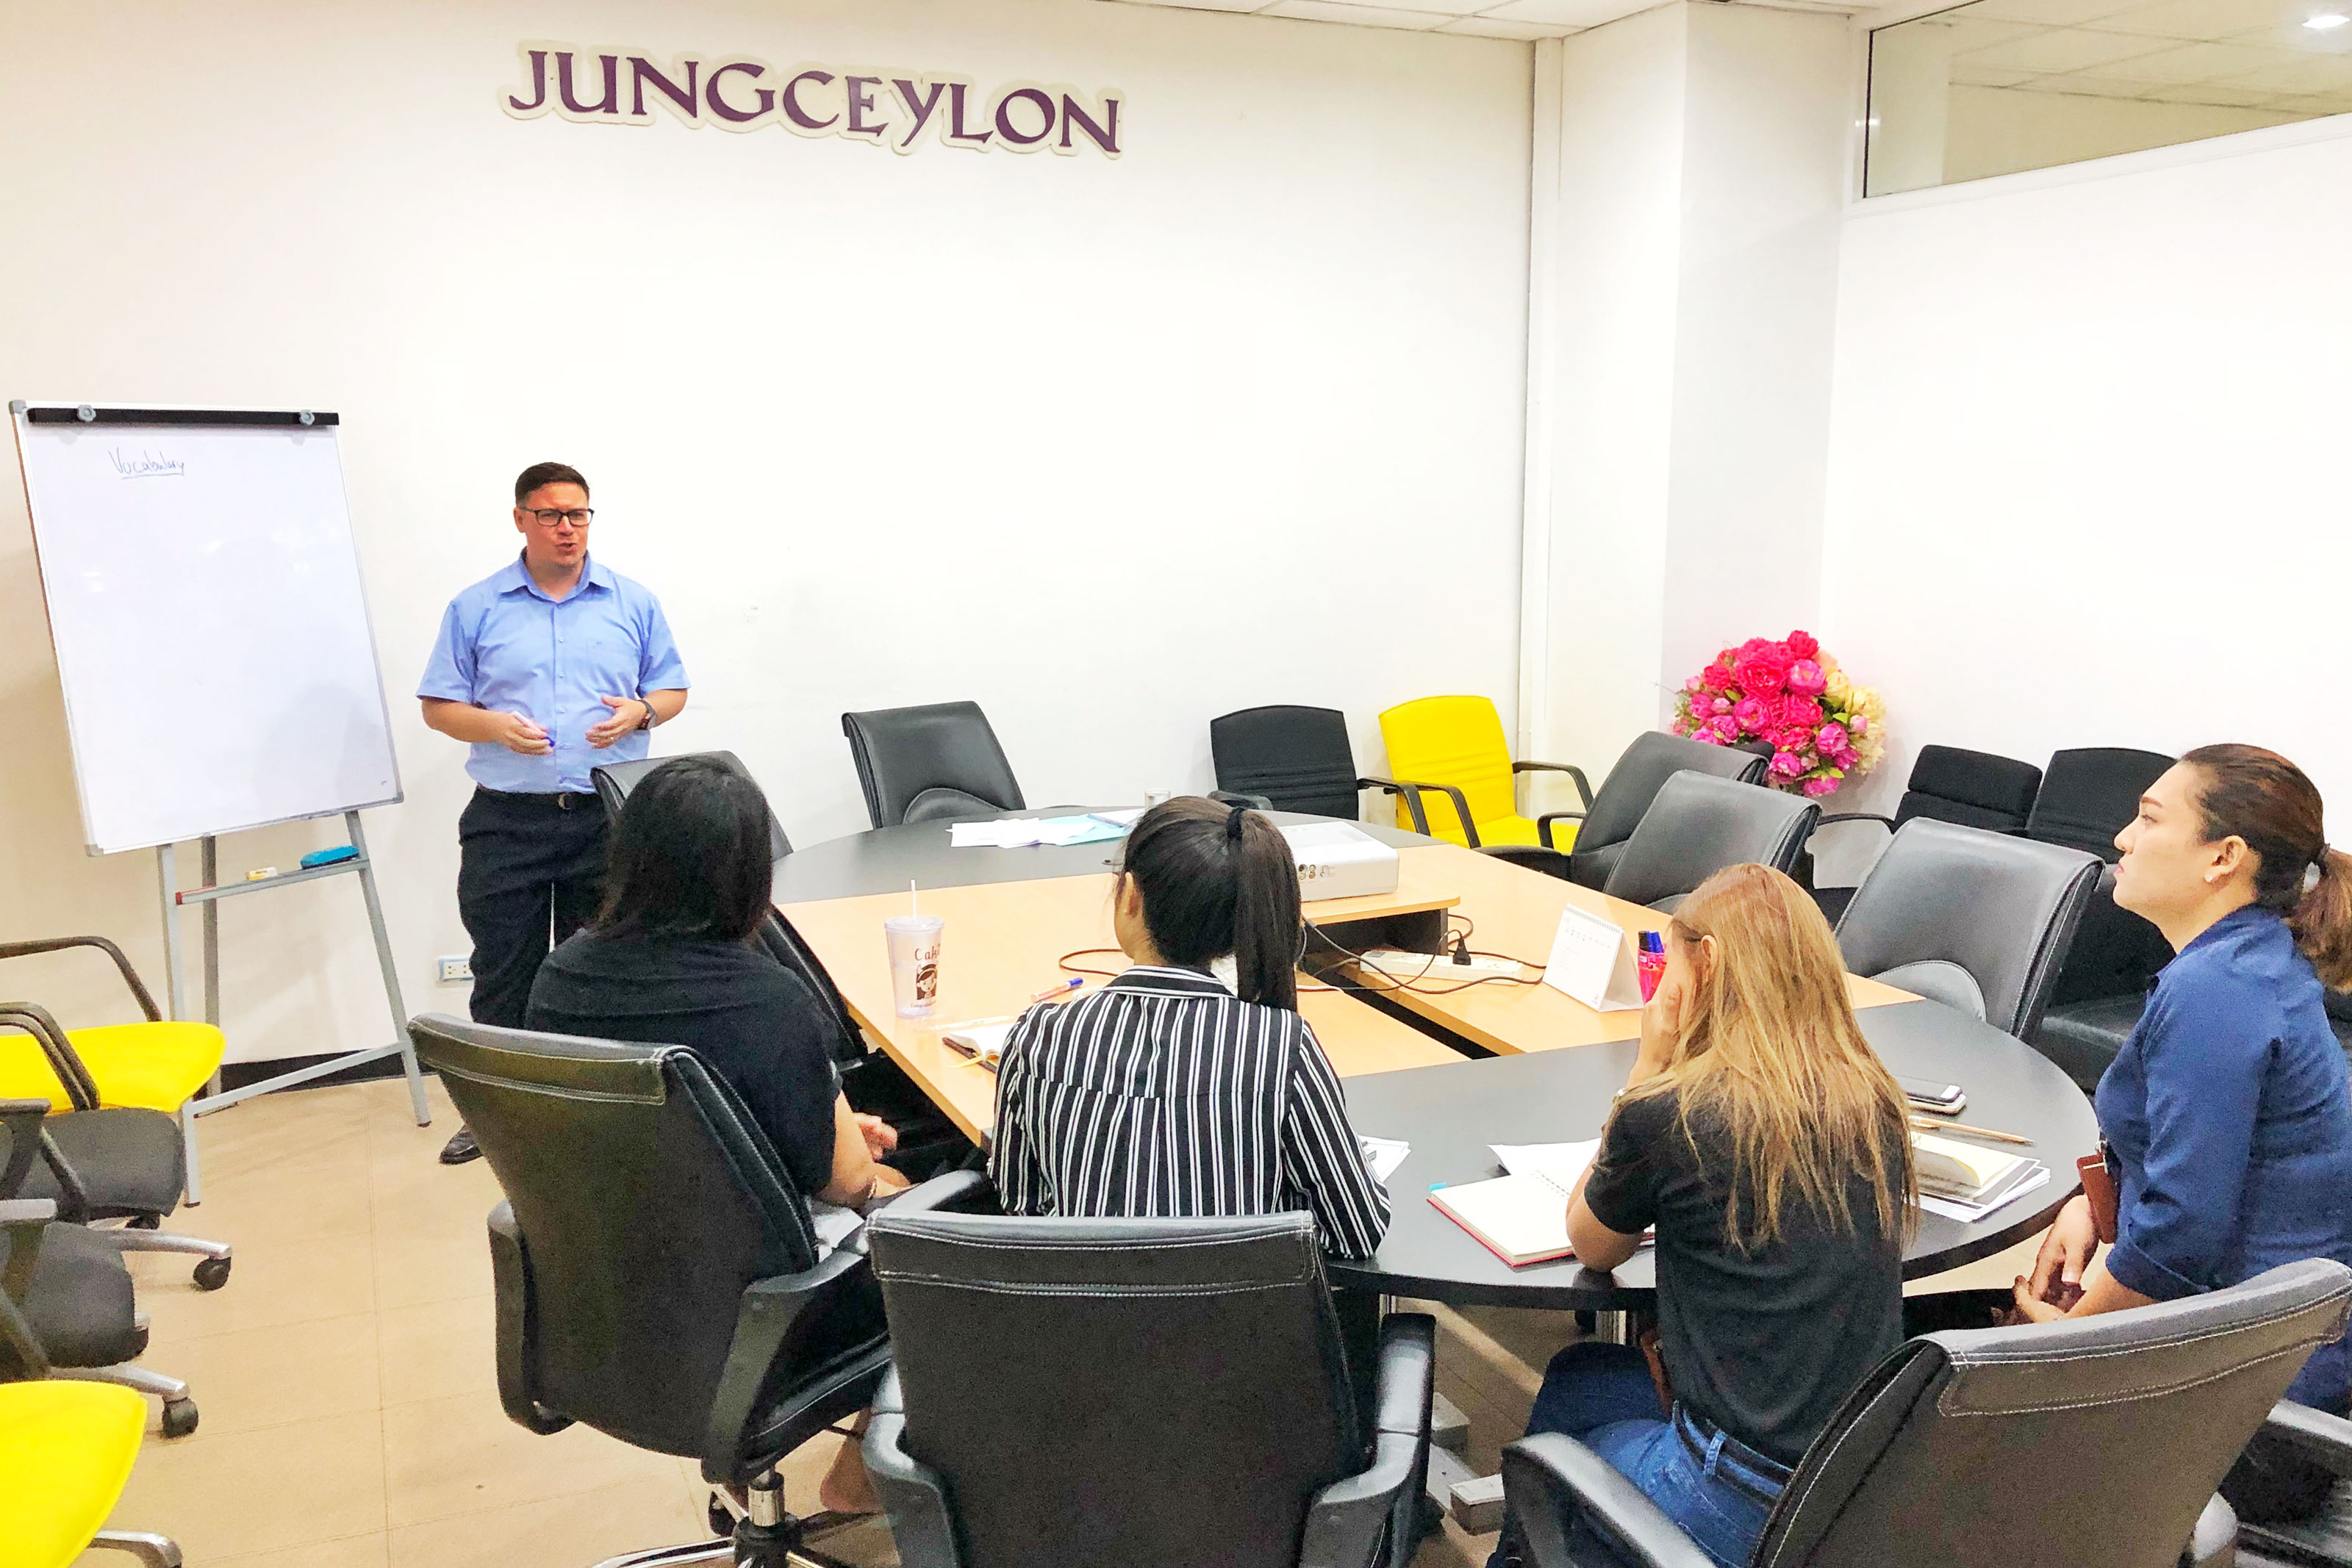 genius english for business at Jungceylon